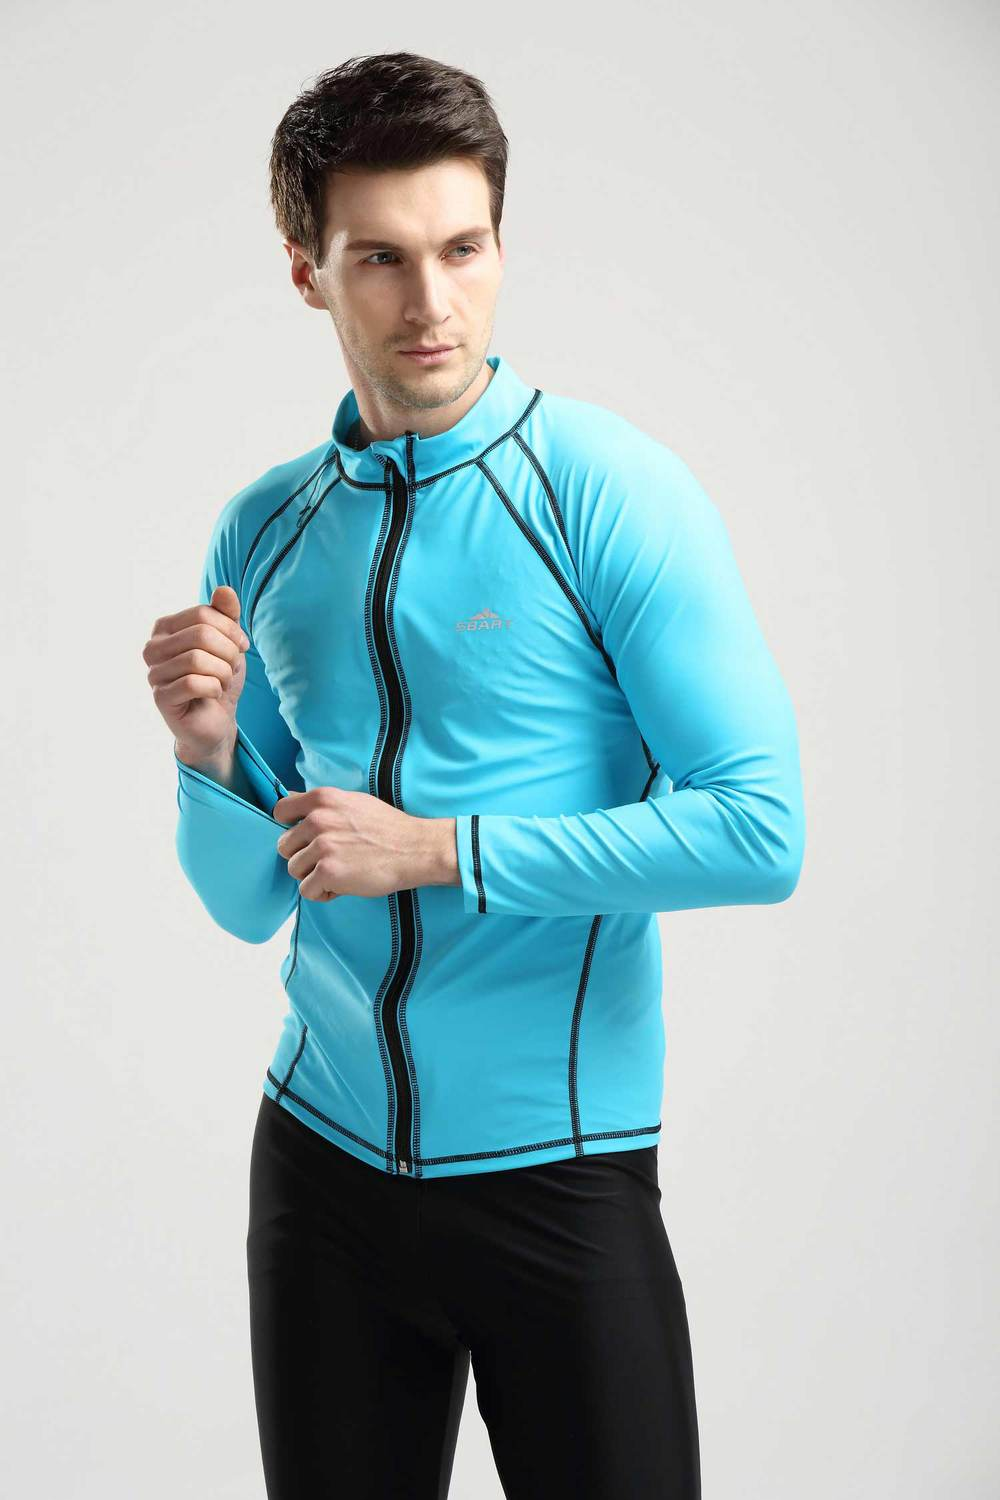 Sbart mens sun protection front zip clothing diving for Custom sun protection shirts